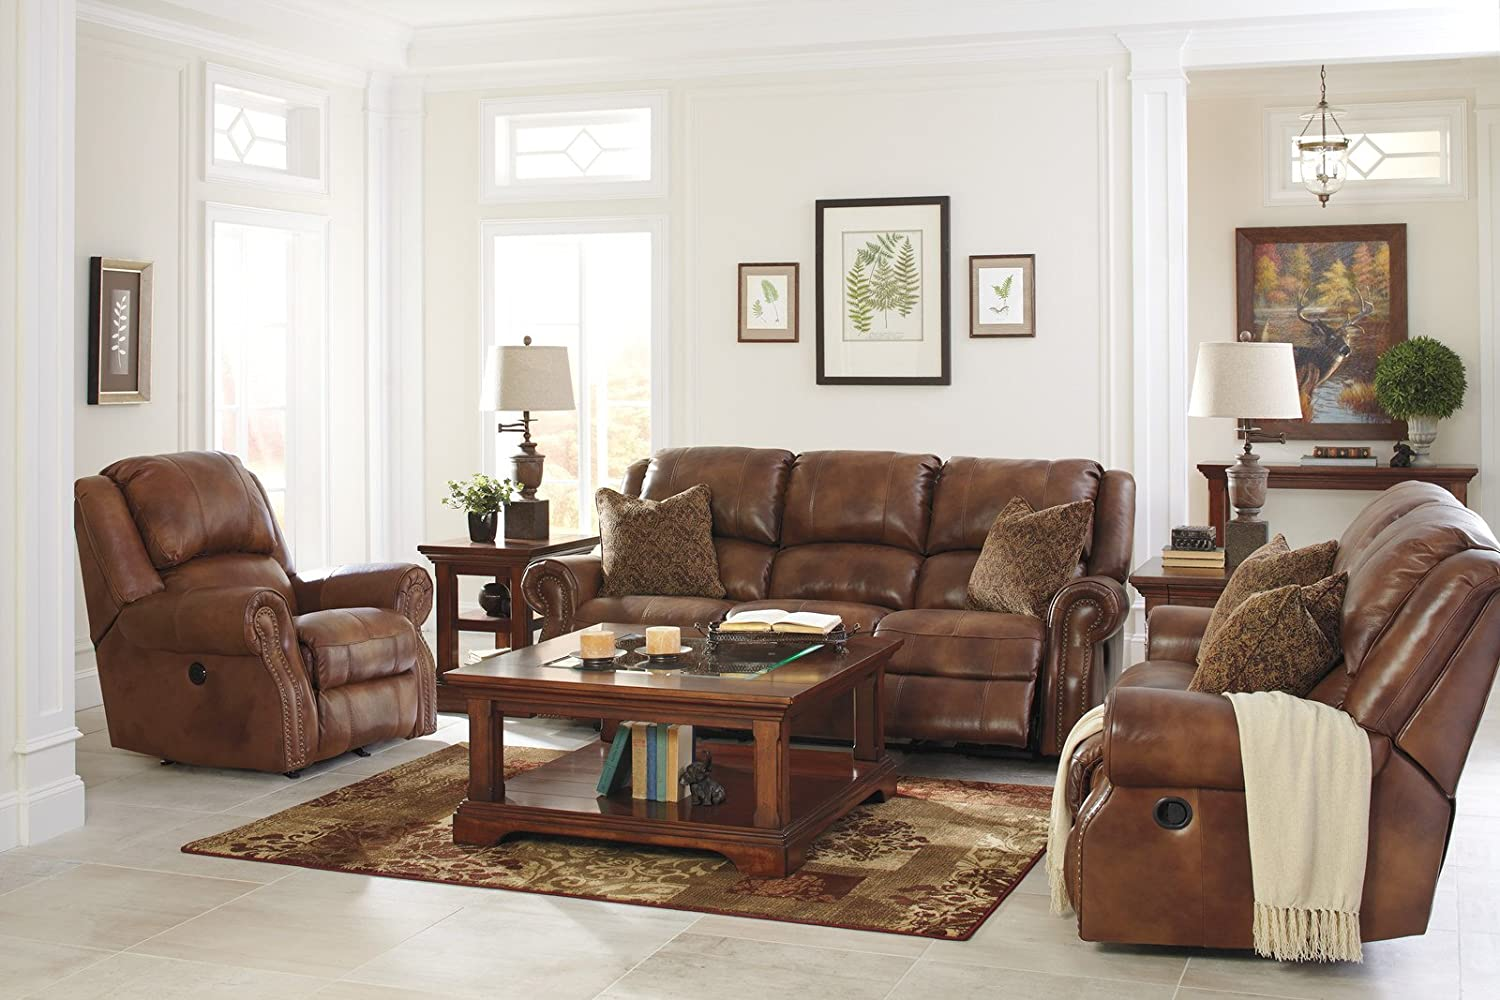 Amazon.com Ashley Furniture Signature Design - Walworth Recliner Chair - Manual Reclining - Auburn Brown Kitchen u0026 Dining & Amazon.com: Ashley Furniture Signature Design - Walworth Recliner ... islam-shia.org